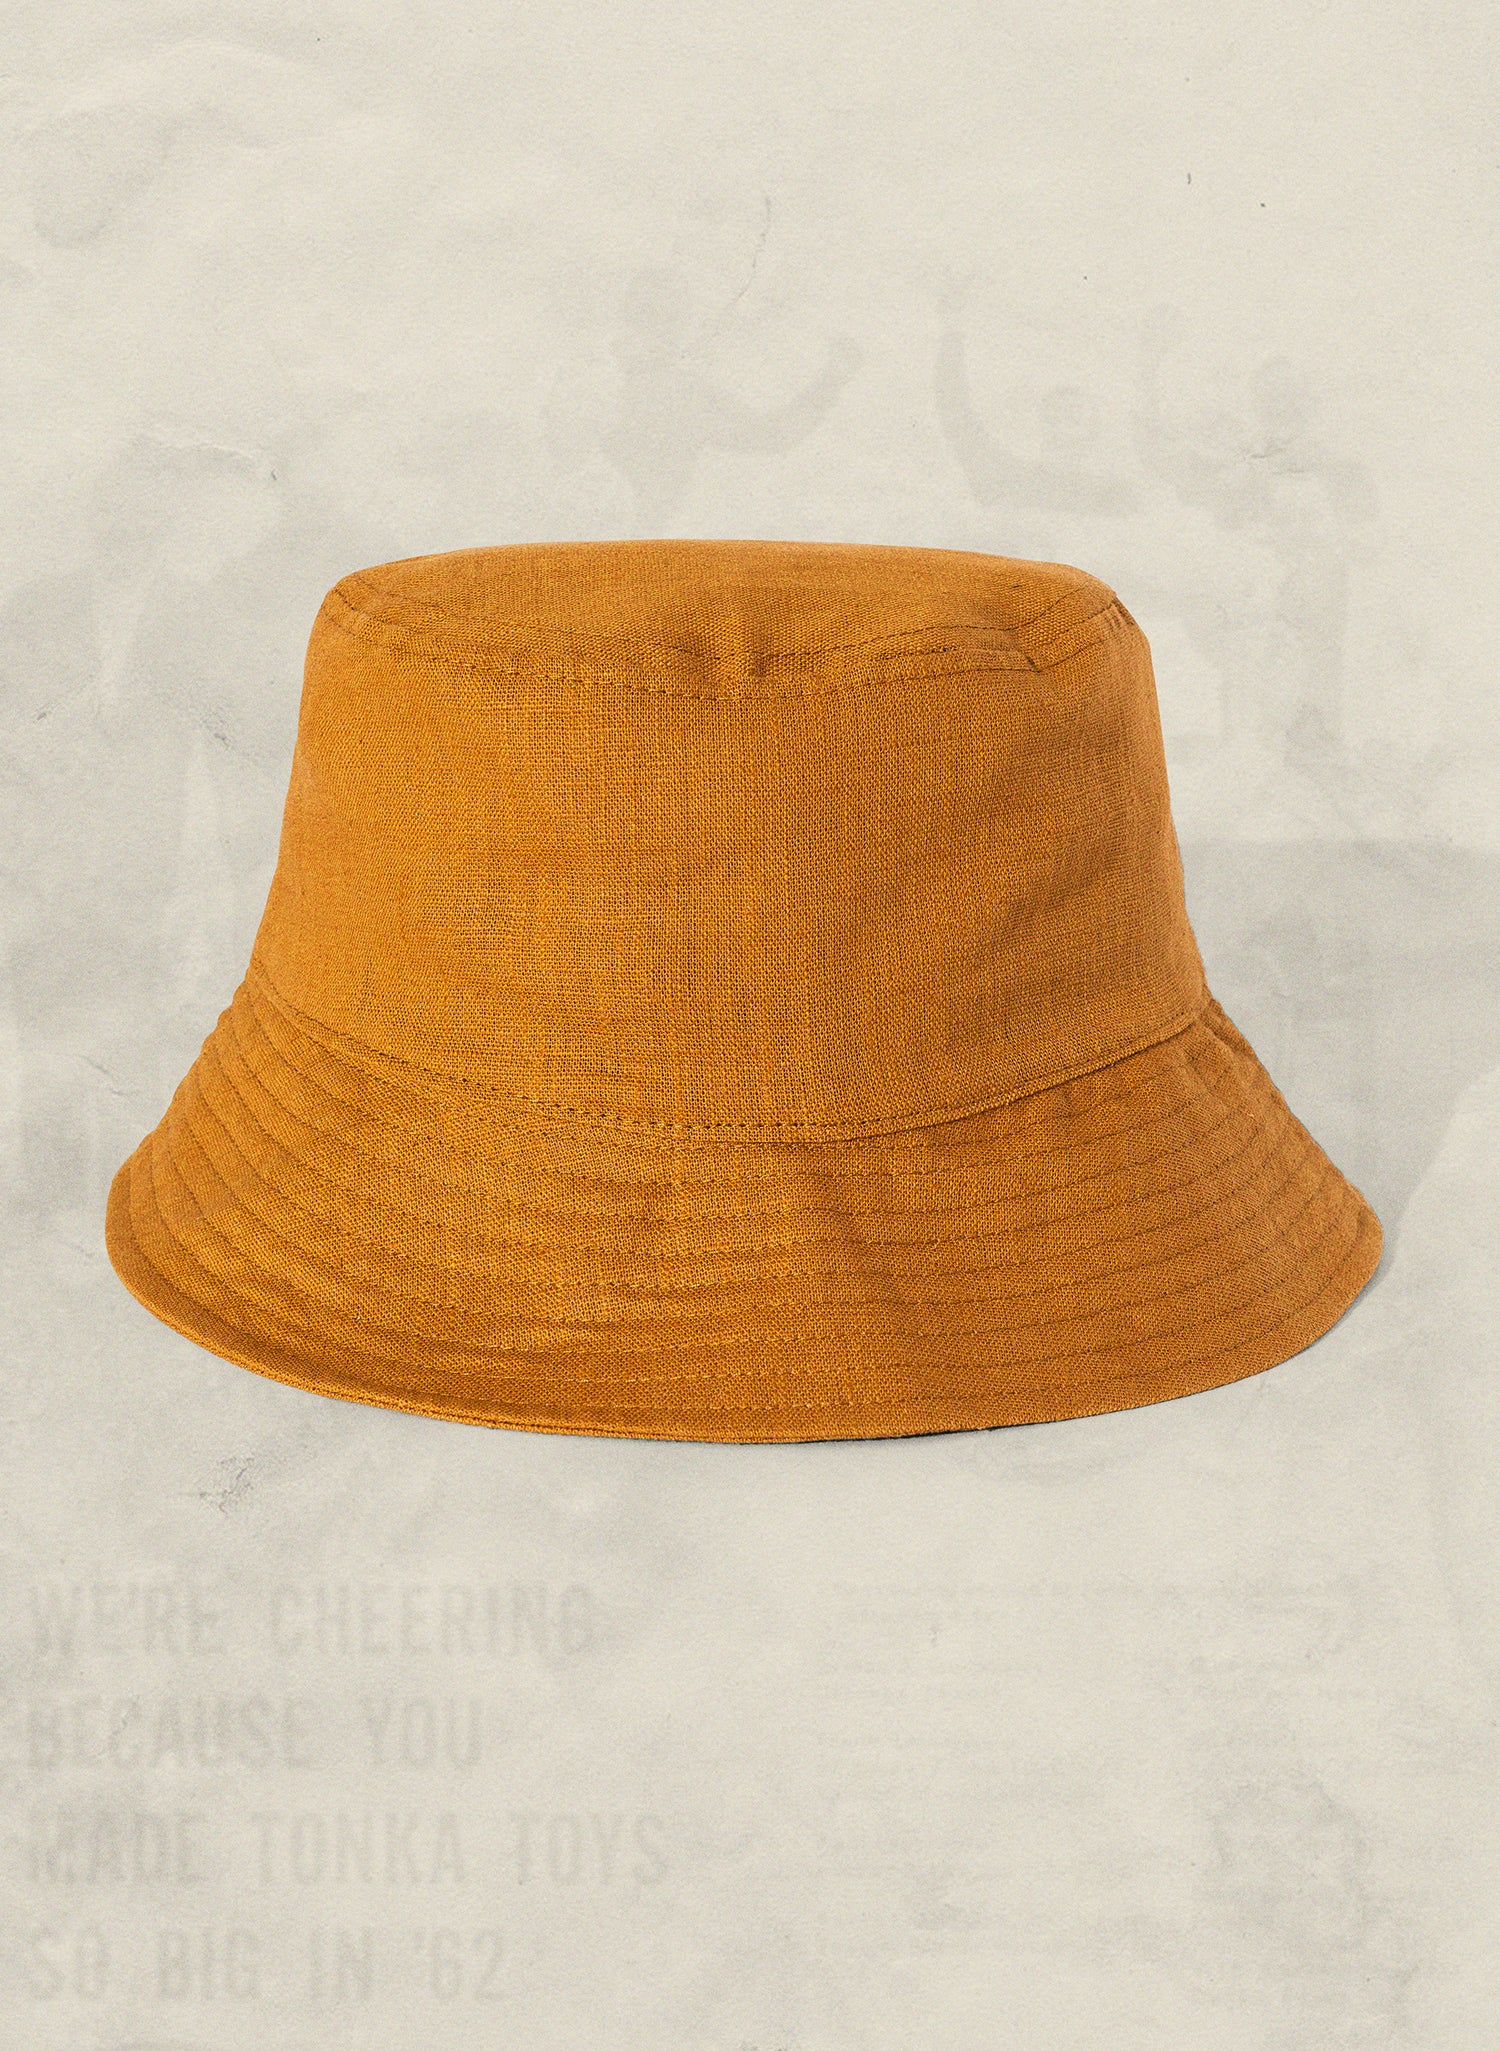 Grown in California Hemp Bucket Hat Sustainable Lifestyle Retro Vintage 70s Boho